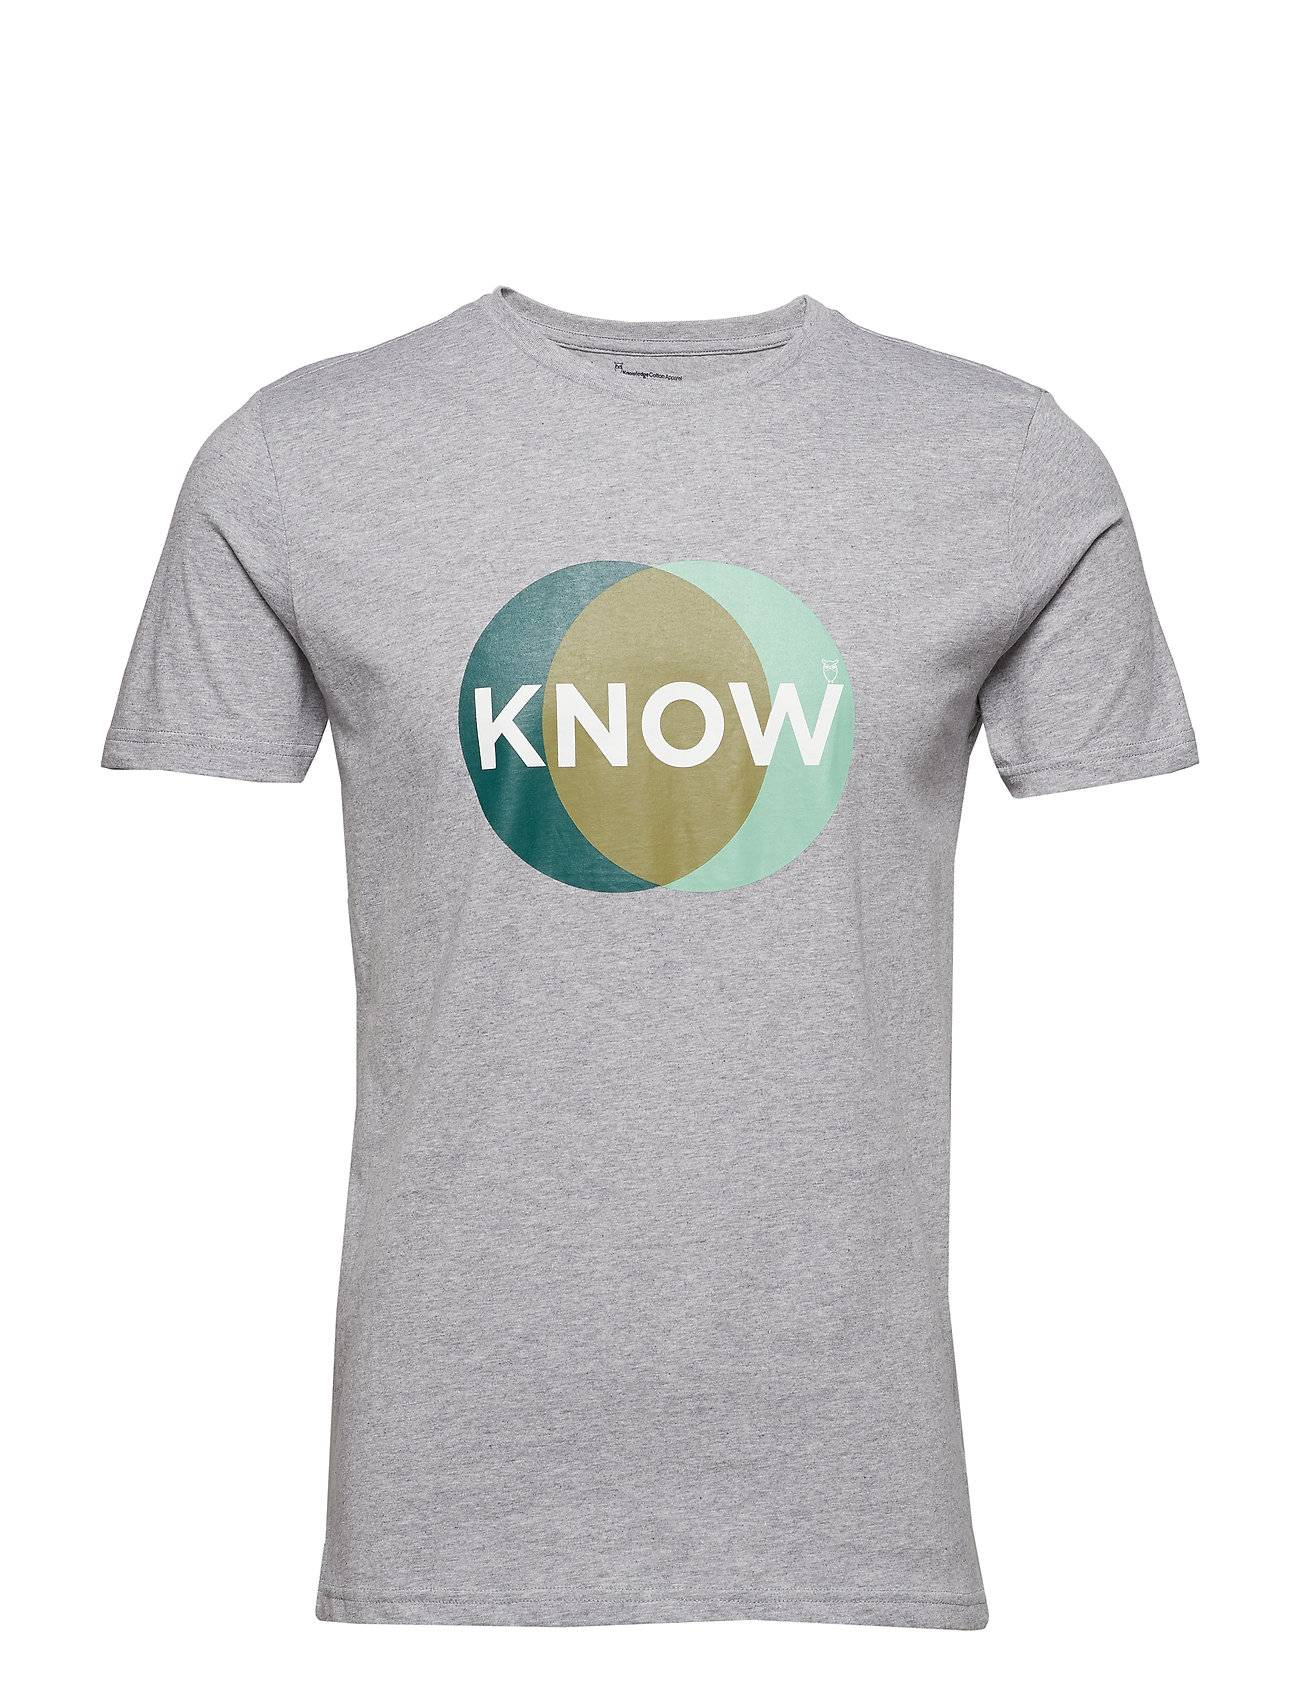 Knowledge Cotton Apparel T-Shirt With Know Print - Gots/Vega